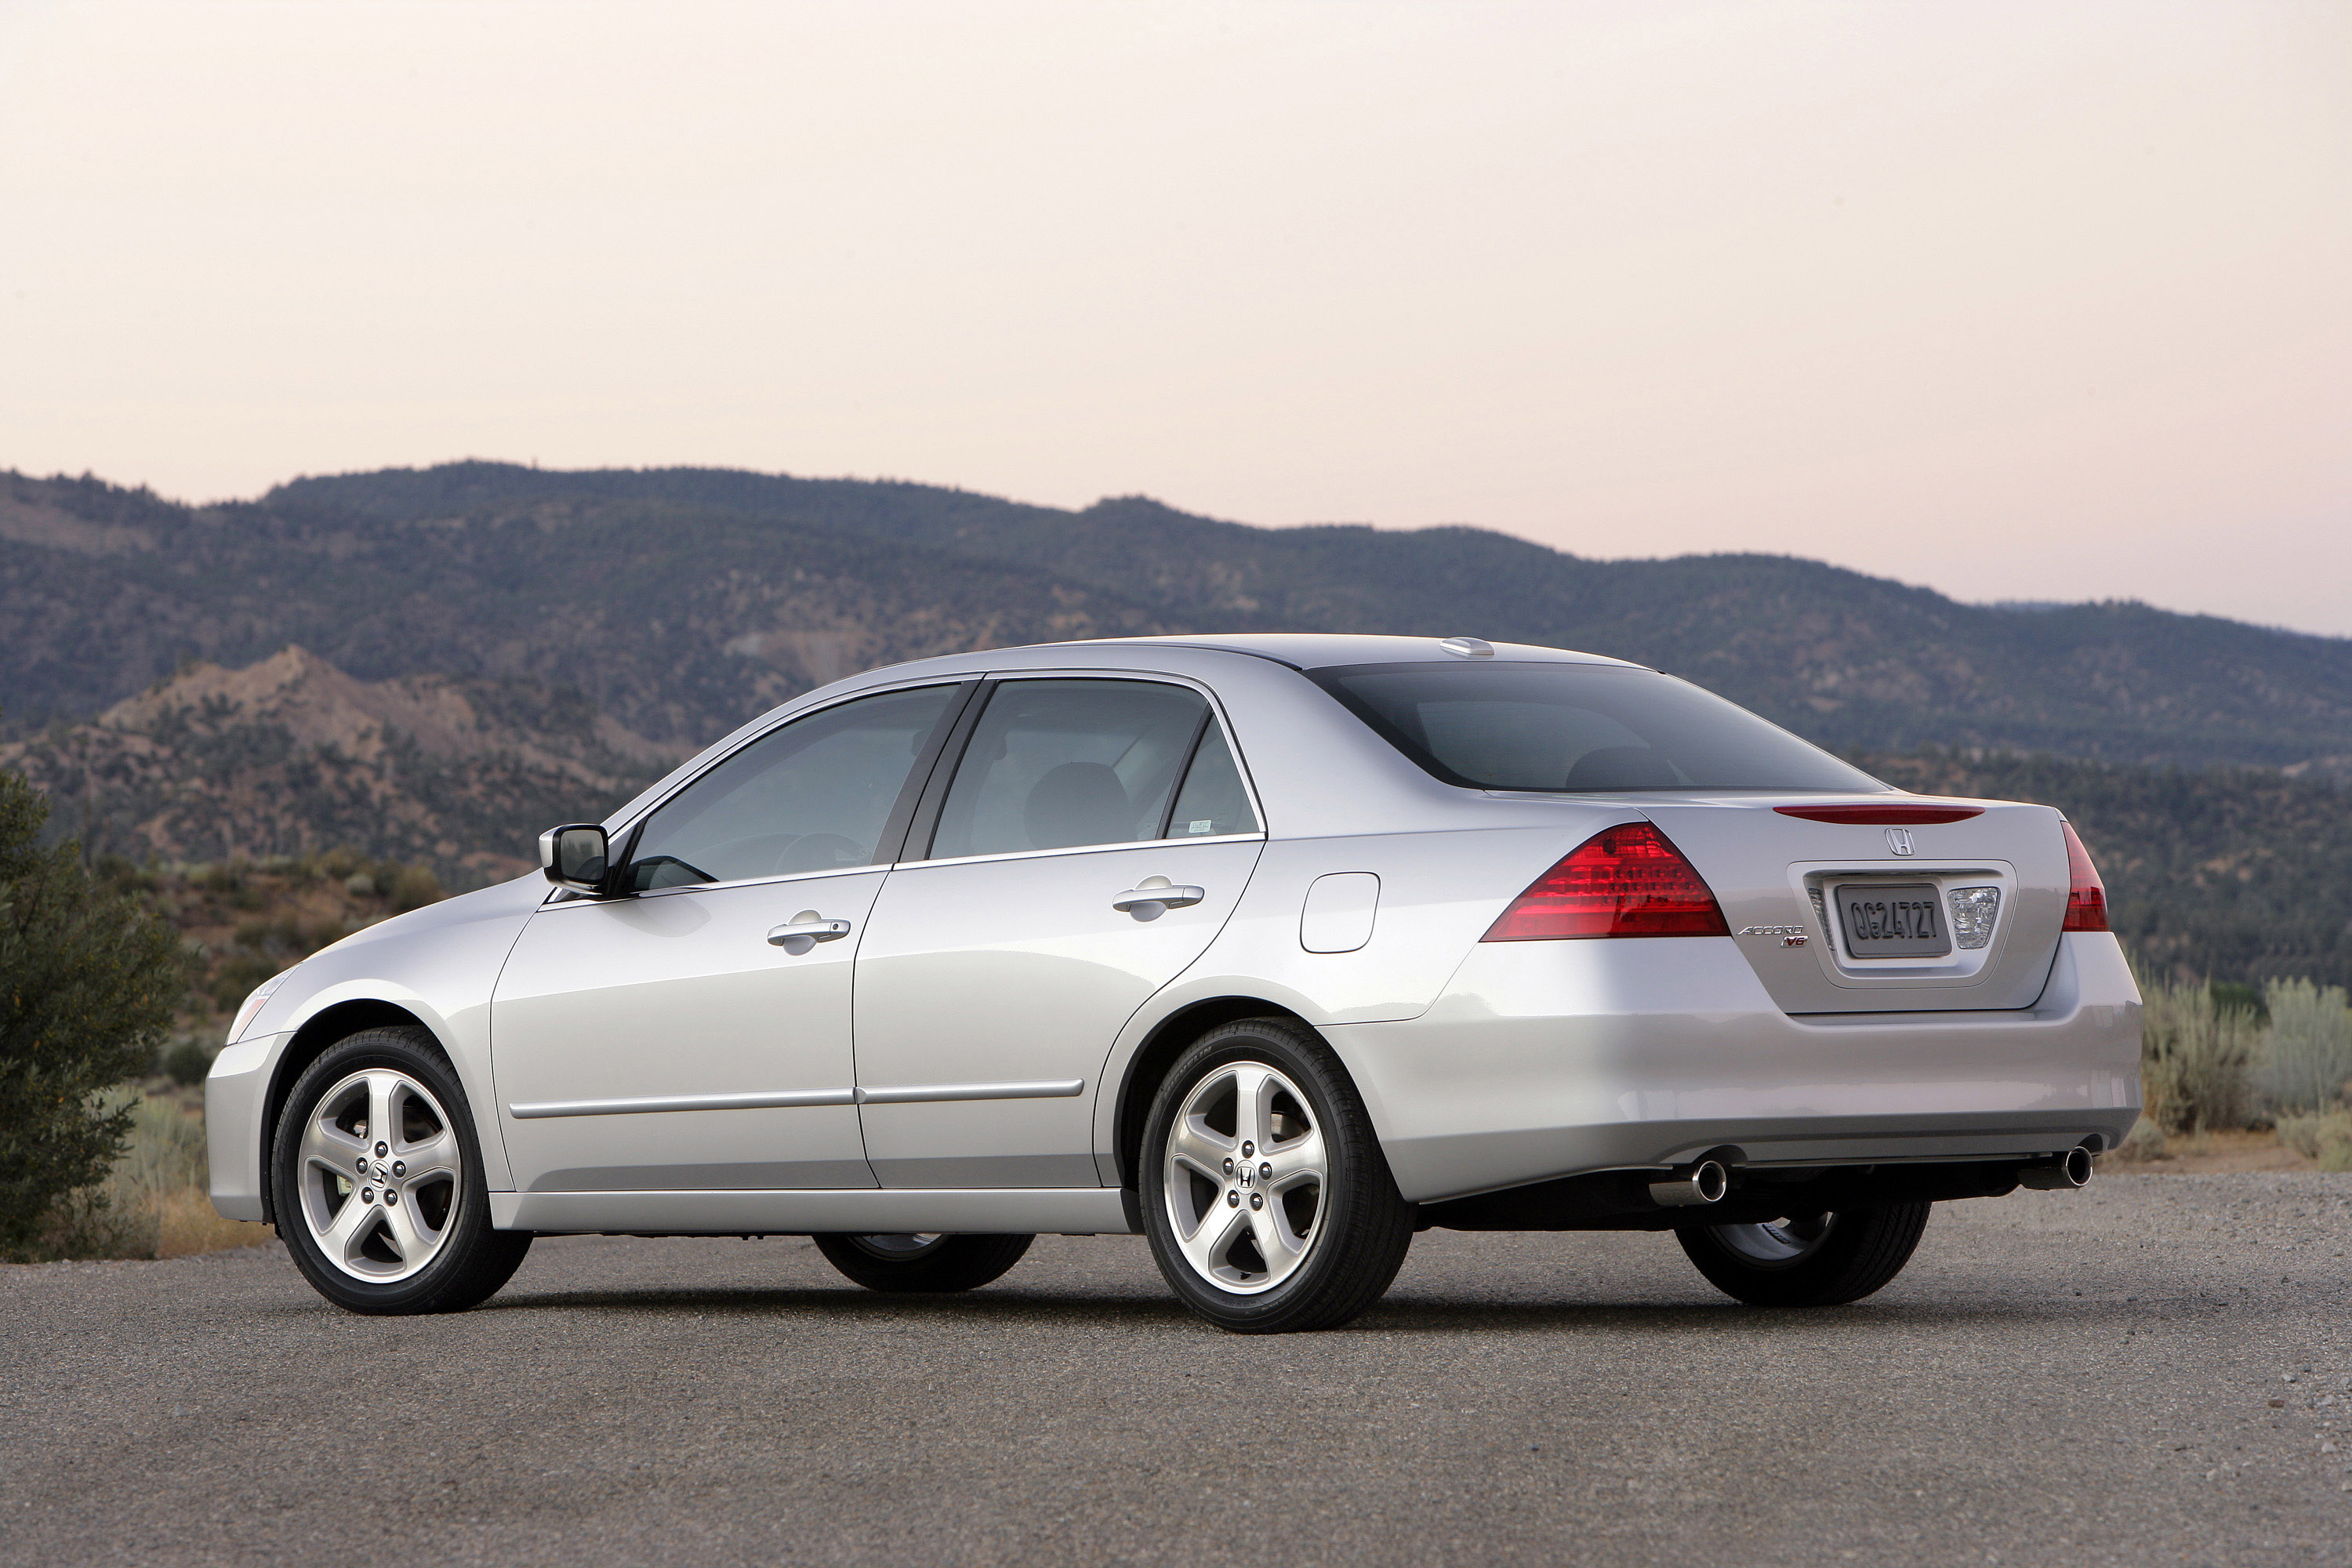 ex l img manual exl honda a accord best v flex modified index transmission speed dur with cars of